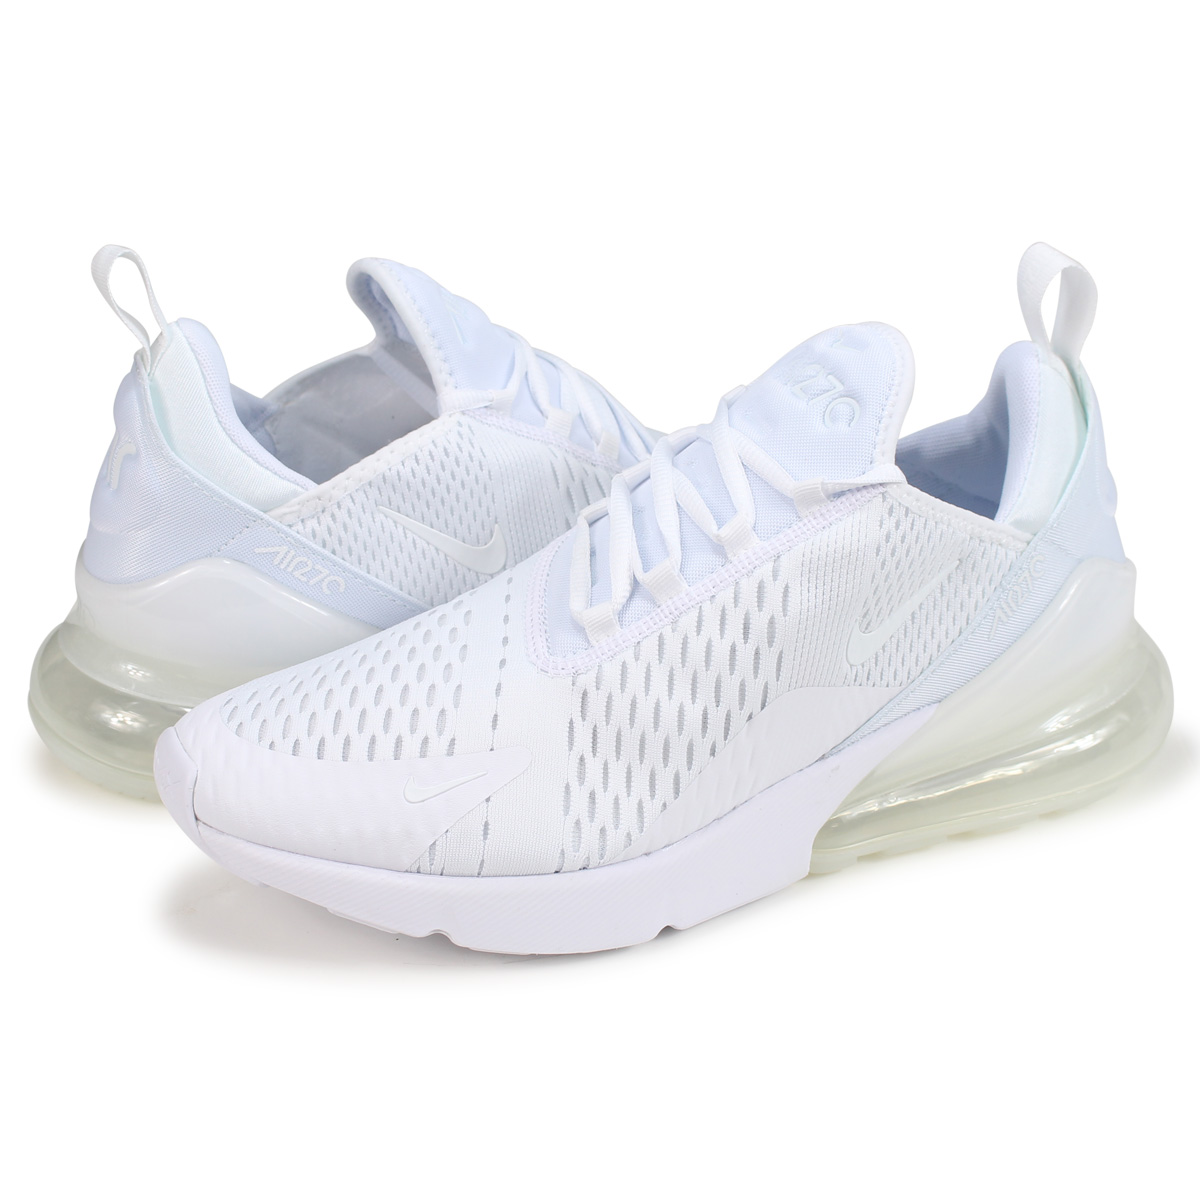 newest d18f8 11272 NIKE AIR MAX 270 Kie Ney AMAX 270 sneakers men AH8050-101 white [10/3  Shinnyu load]